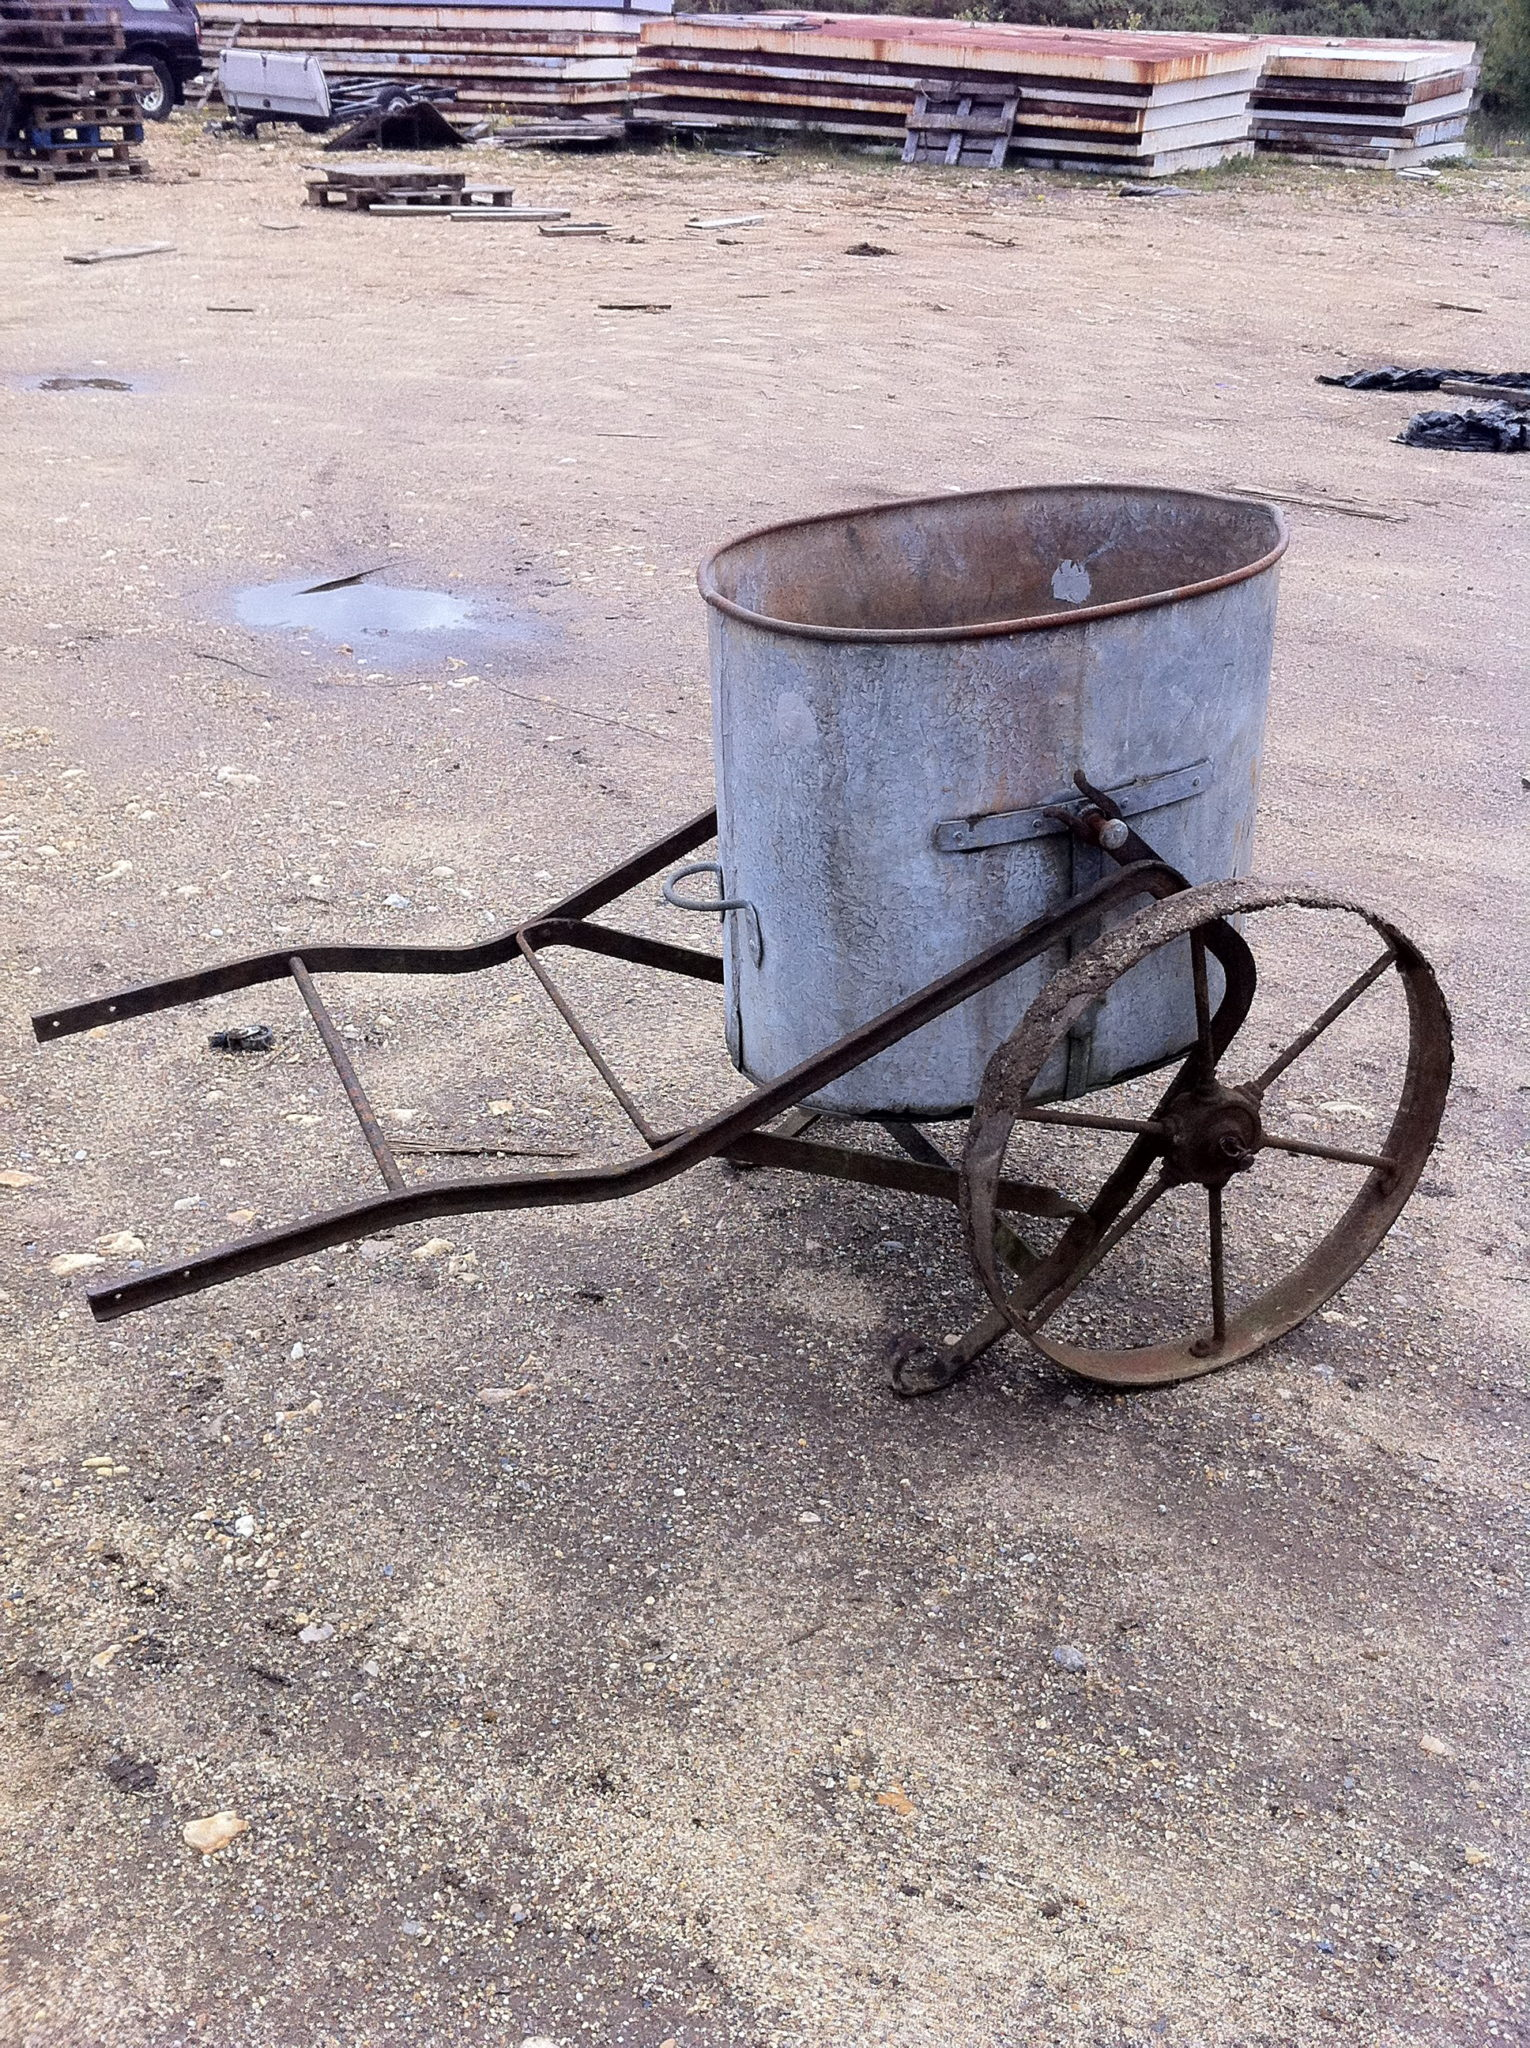 Period Tar boilers & sprayers - Tipping Water Butt